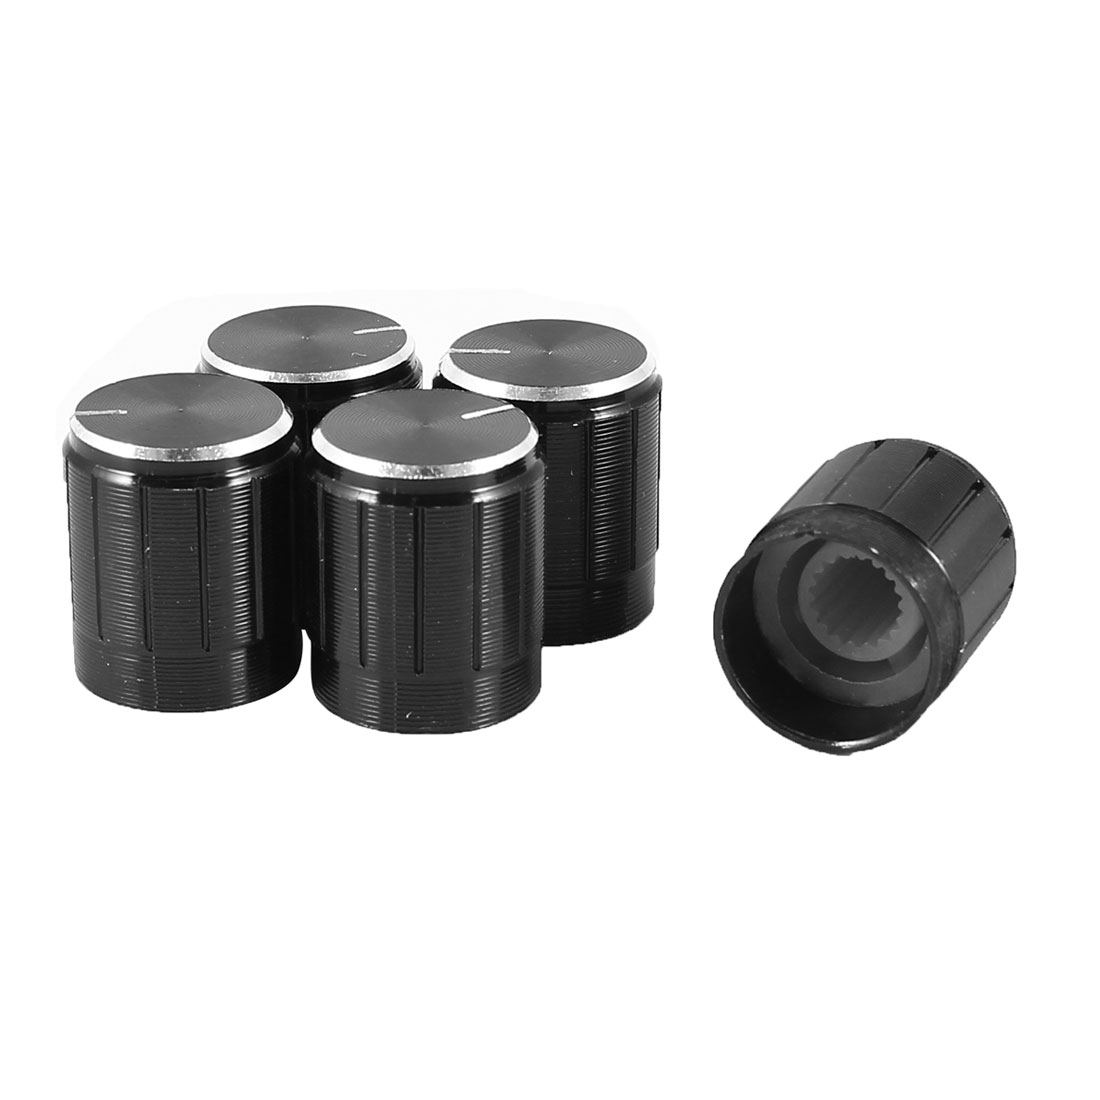 5 Pcs 6mm Hole Diameter Potentiometer Knob Cover Cap 15mmx17mm Black